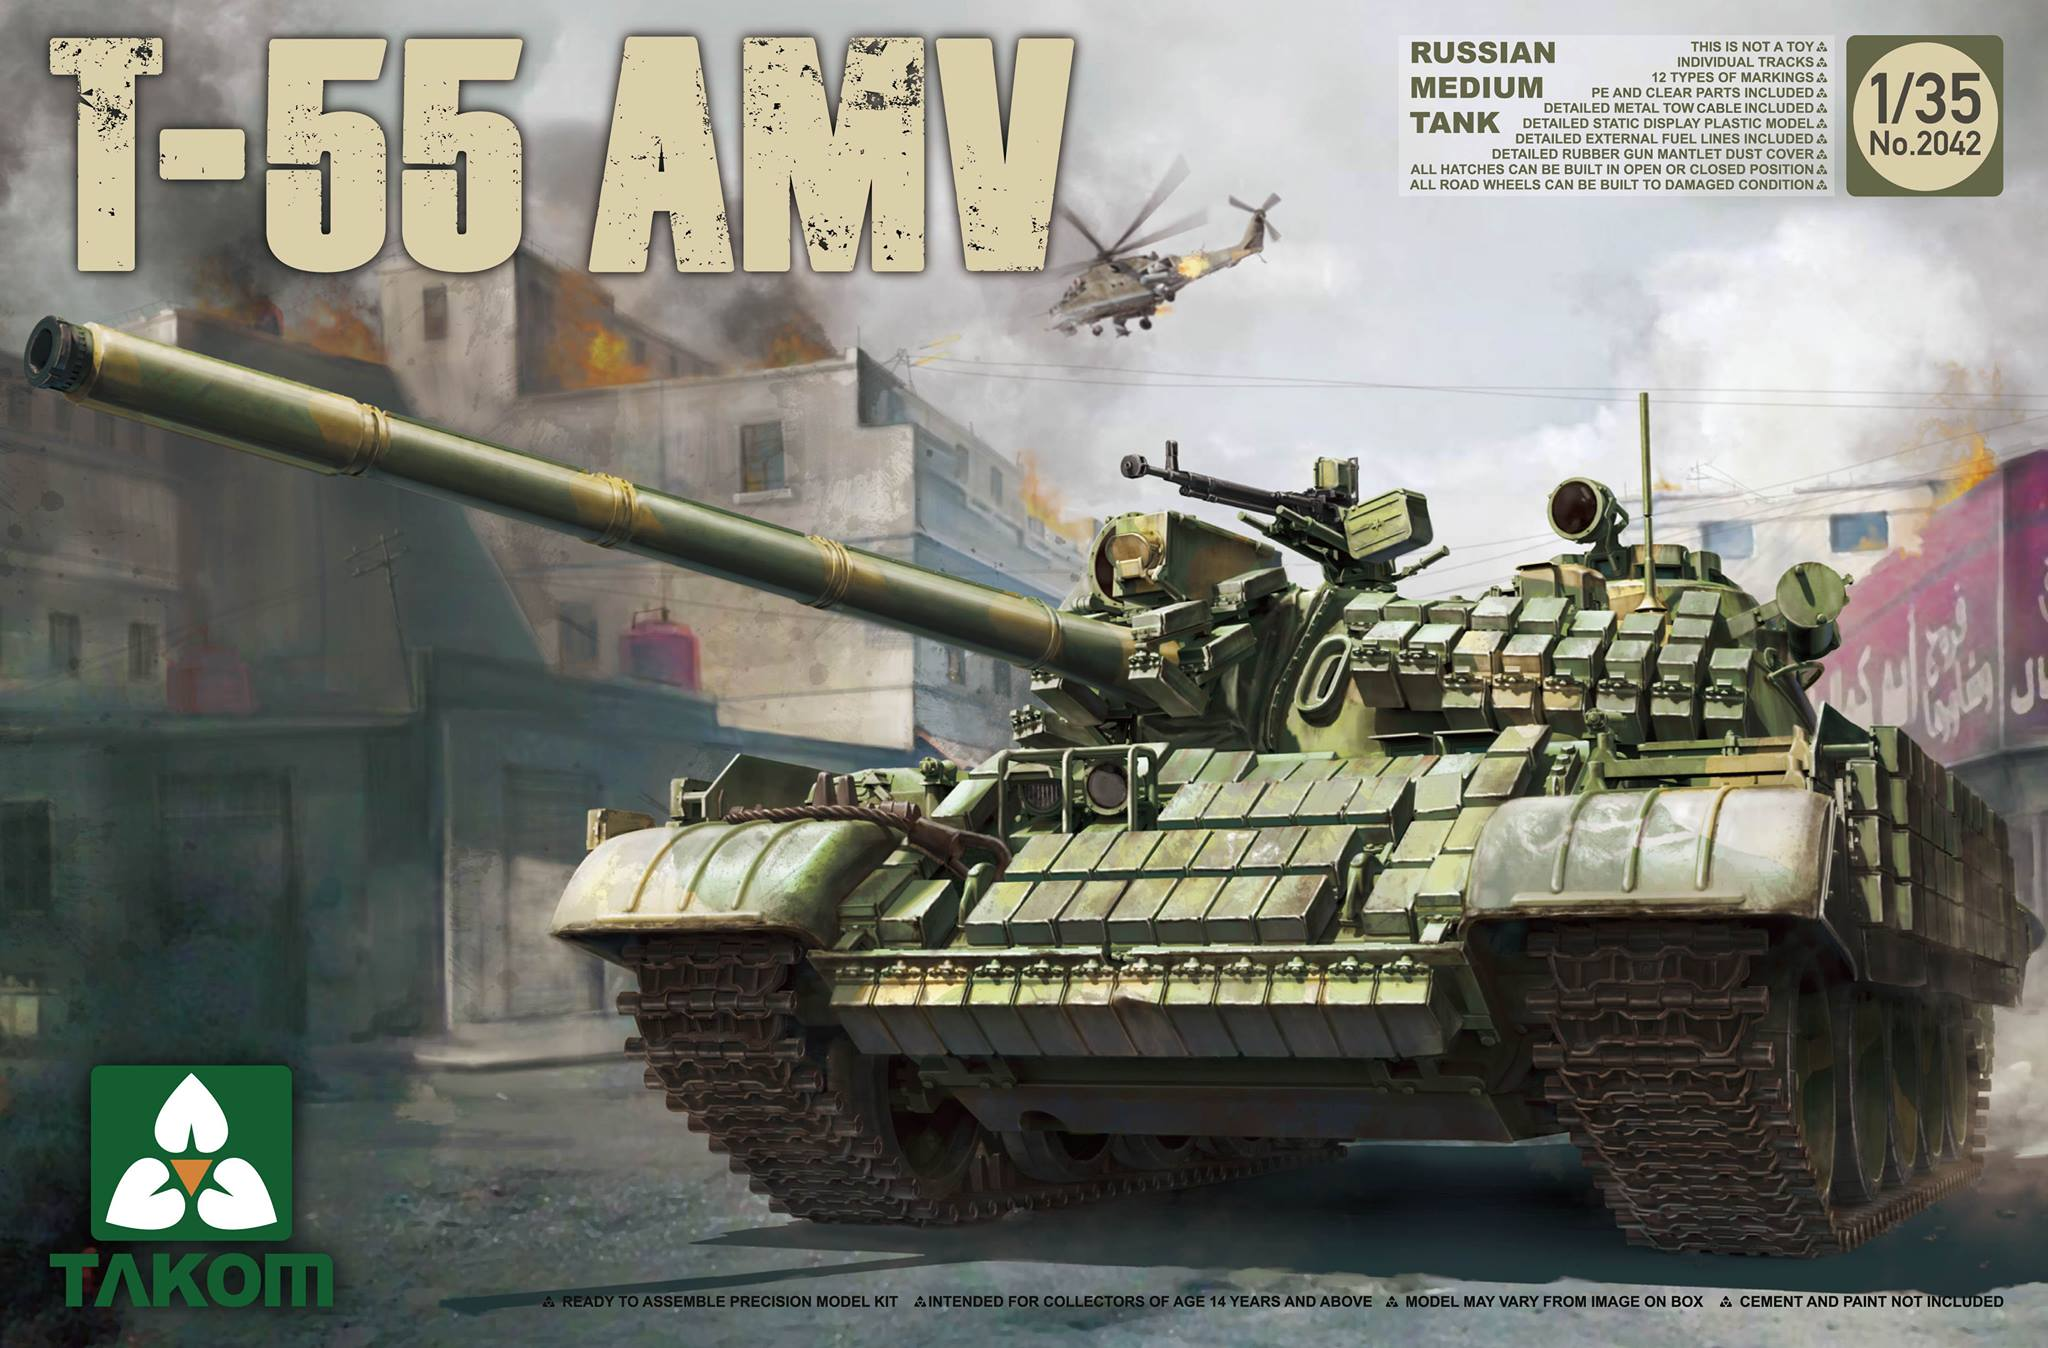 Russian Medium Tank T-55 AMV